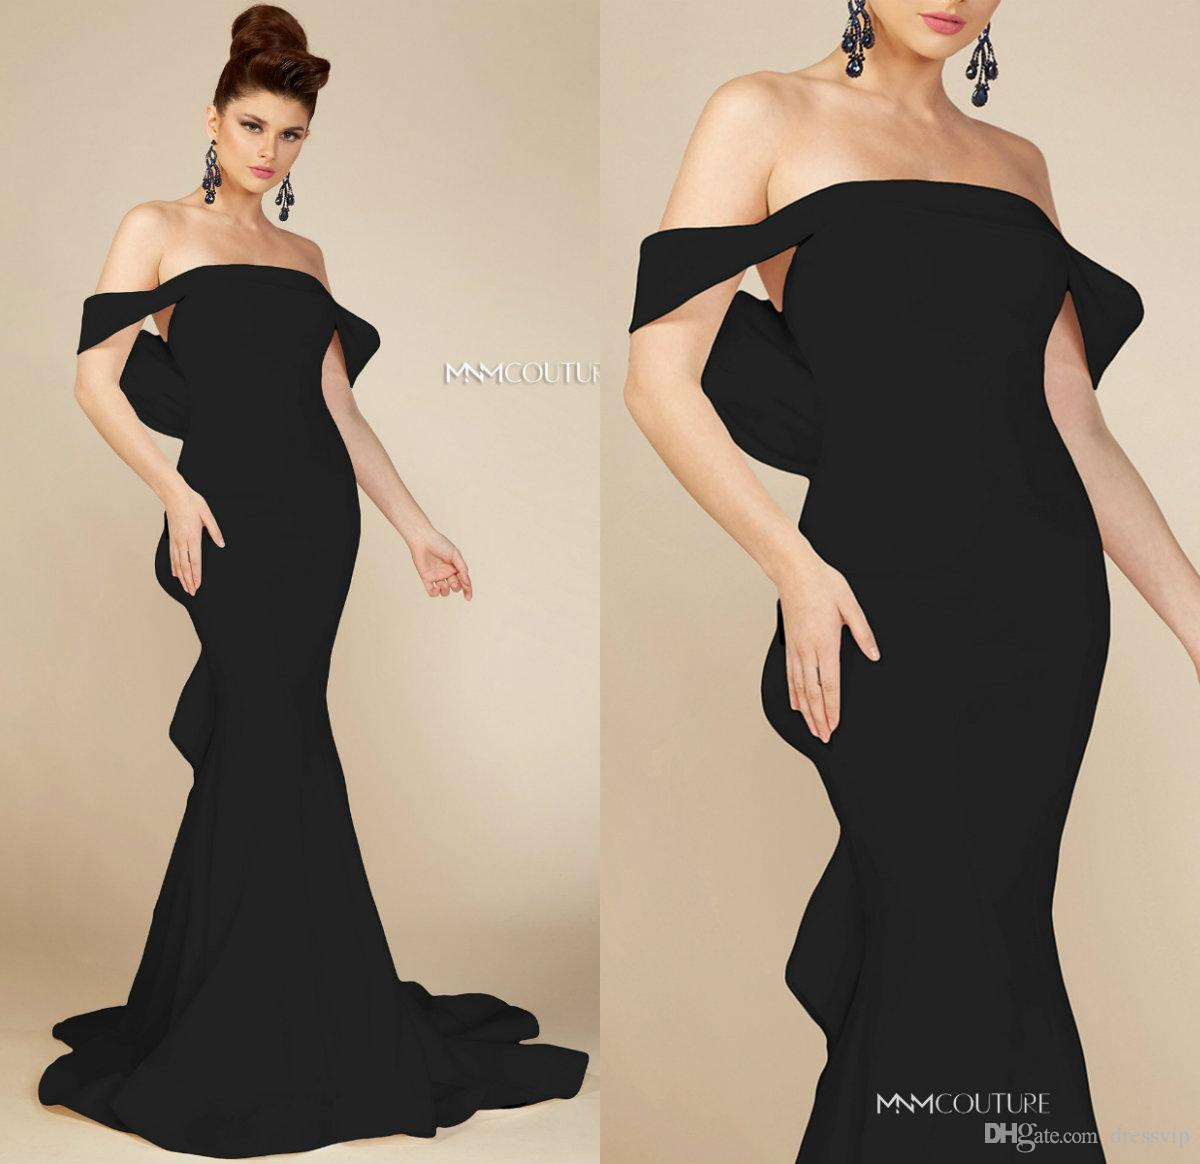 1a082dfb6b9 2019 Black Evening Dresses Satin Off The Shoulder Ruffles Bow Sweep Train  Mermaid Prom Dress Custom Made Formal Party Gowns Evening Dresses For  Teenagers ...